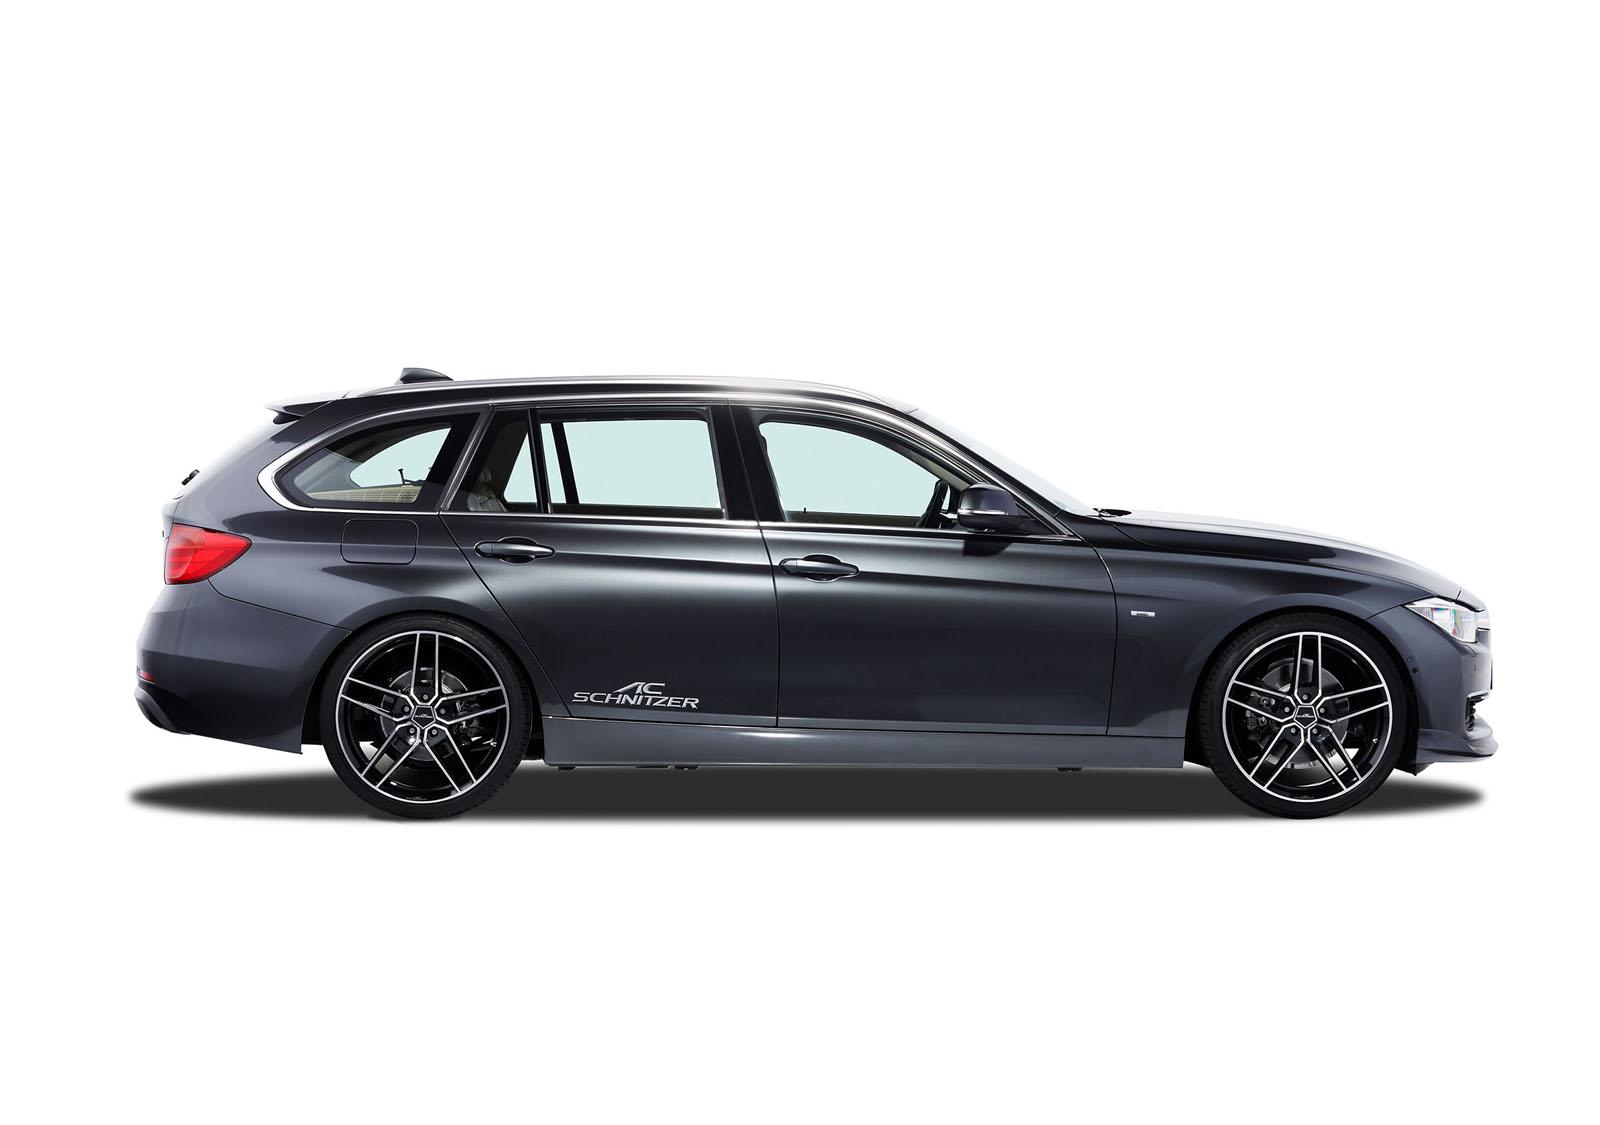 ac schnitzer can now take on your f30 bmw 3 series touring bmw car tuning. Black Bedroom Furniture Sets. Home Design Ideas